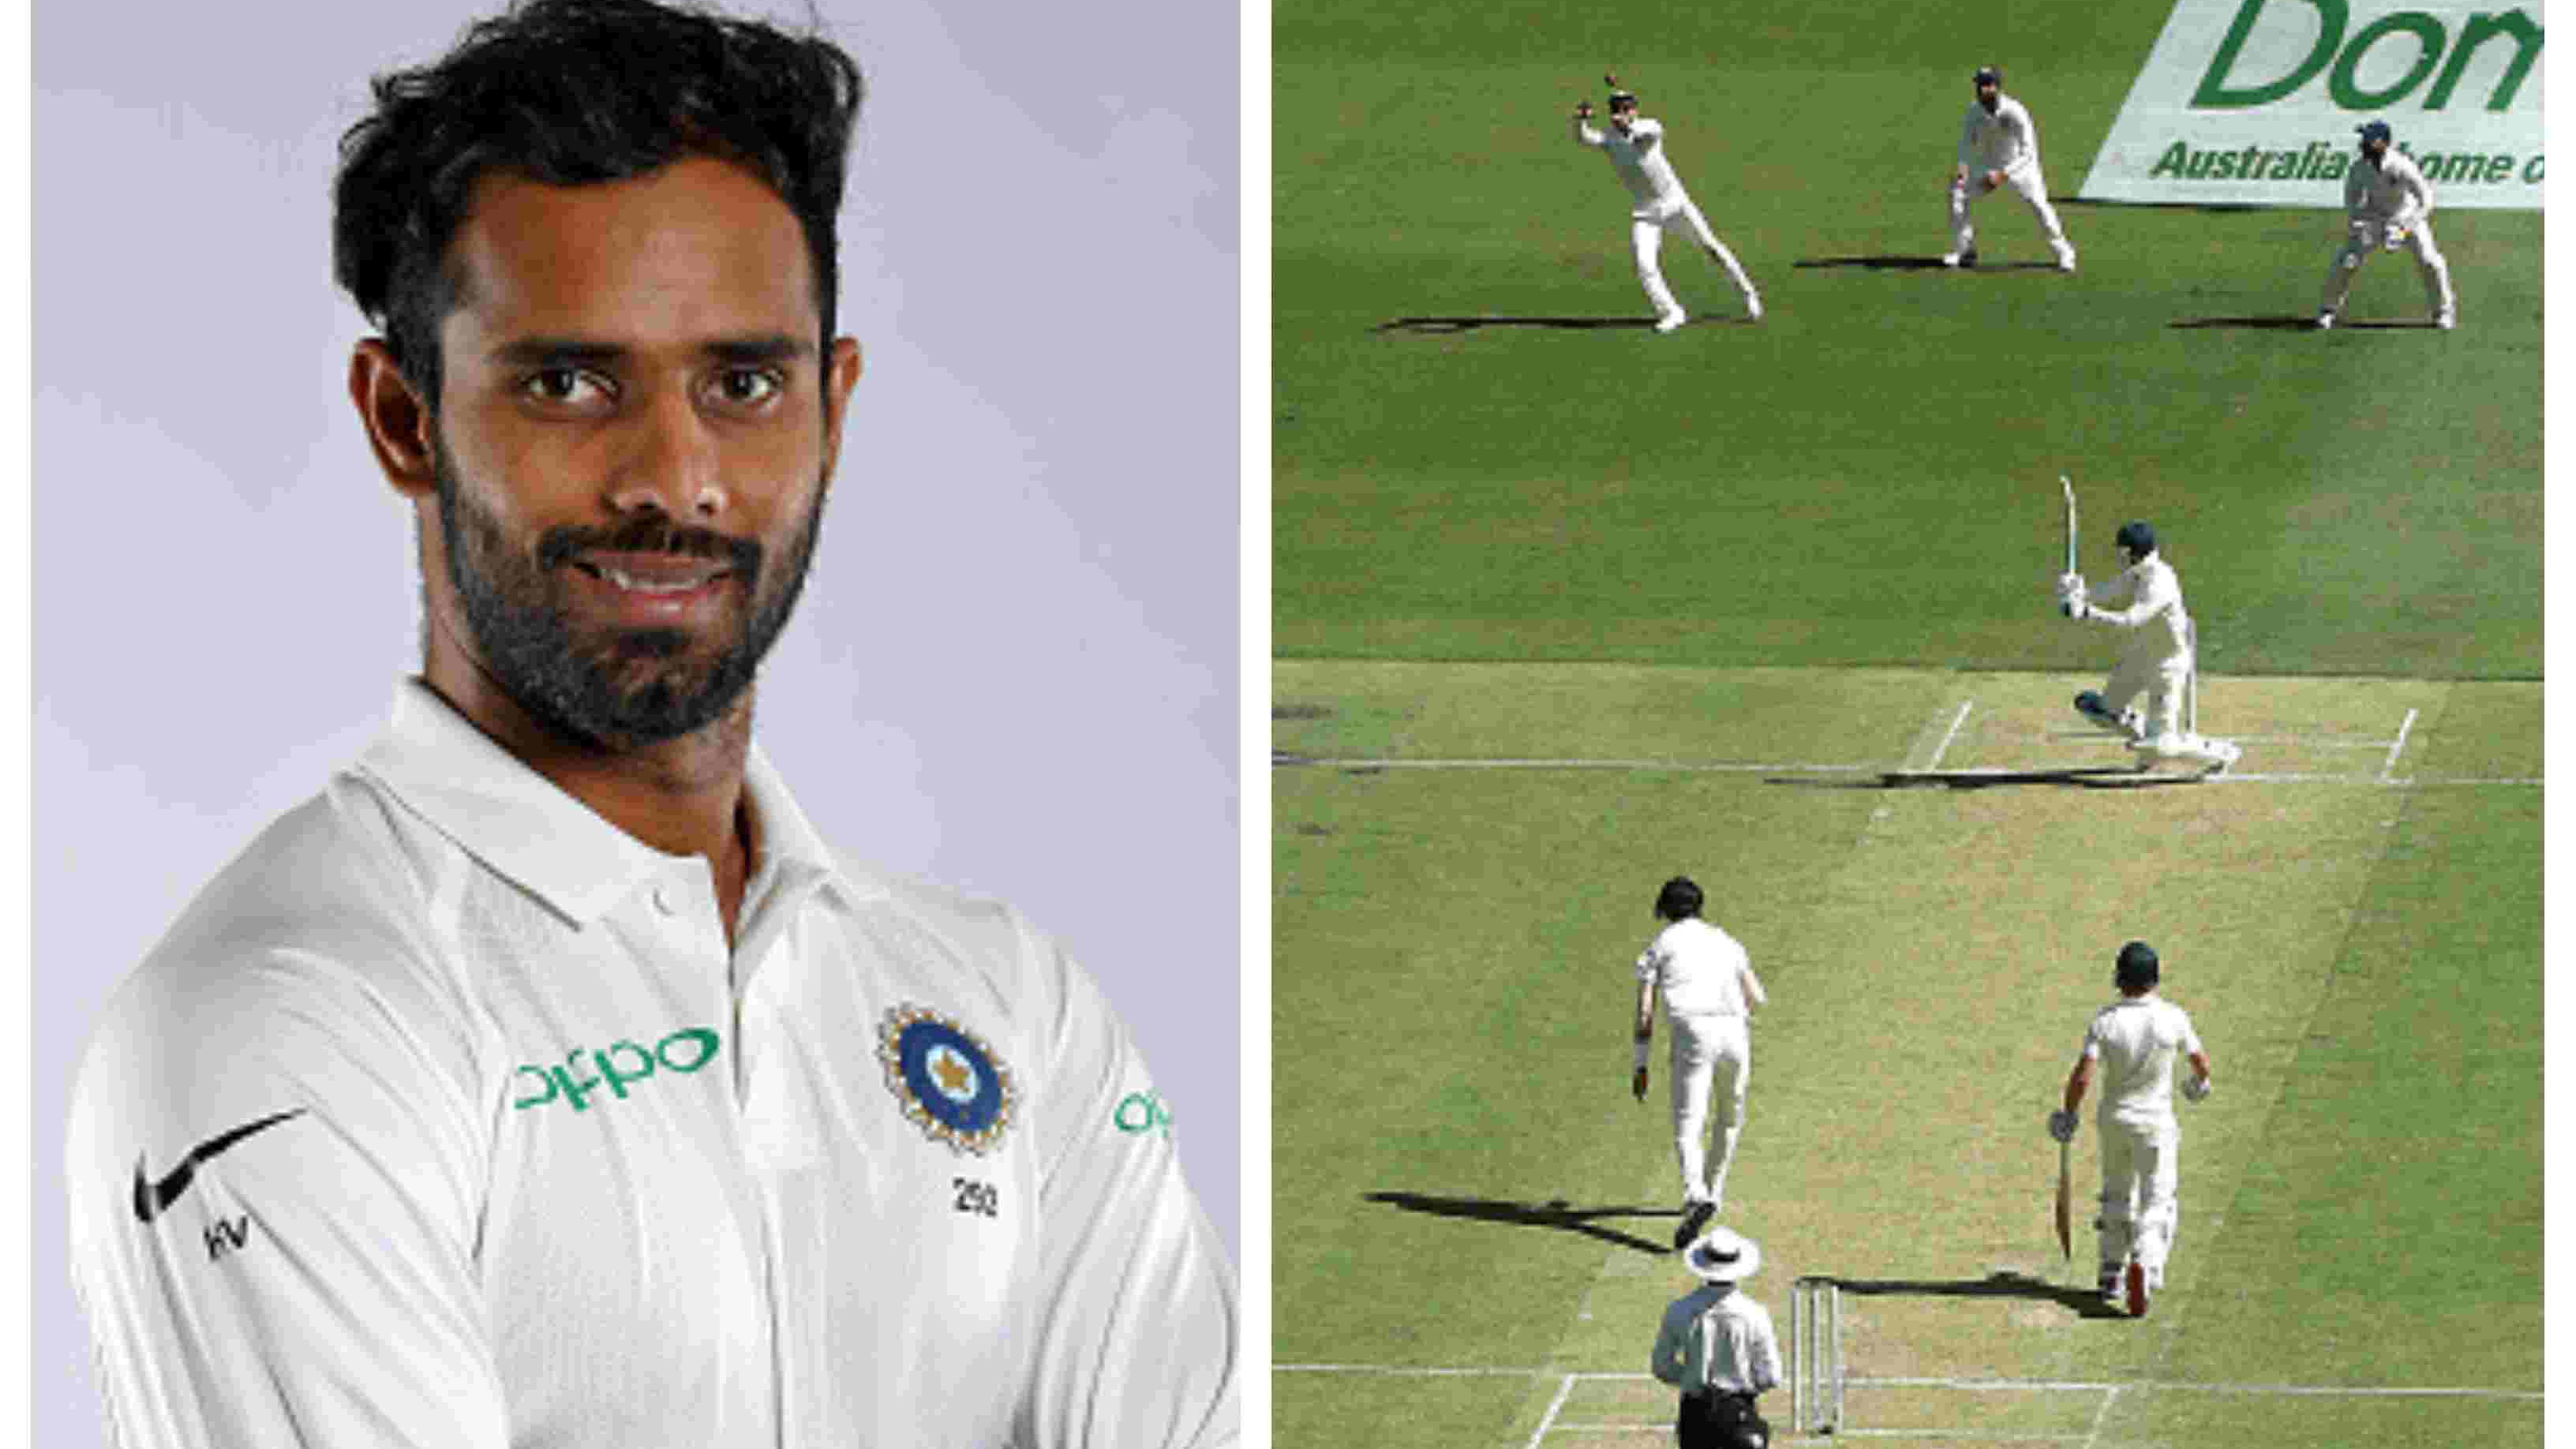 AUS v IND 2018-19: Hanuma Vihari hails Virat Kohli's one-handed screamer to dismiss Peter Handscomb